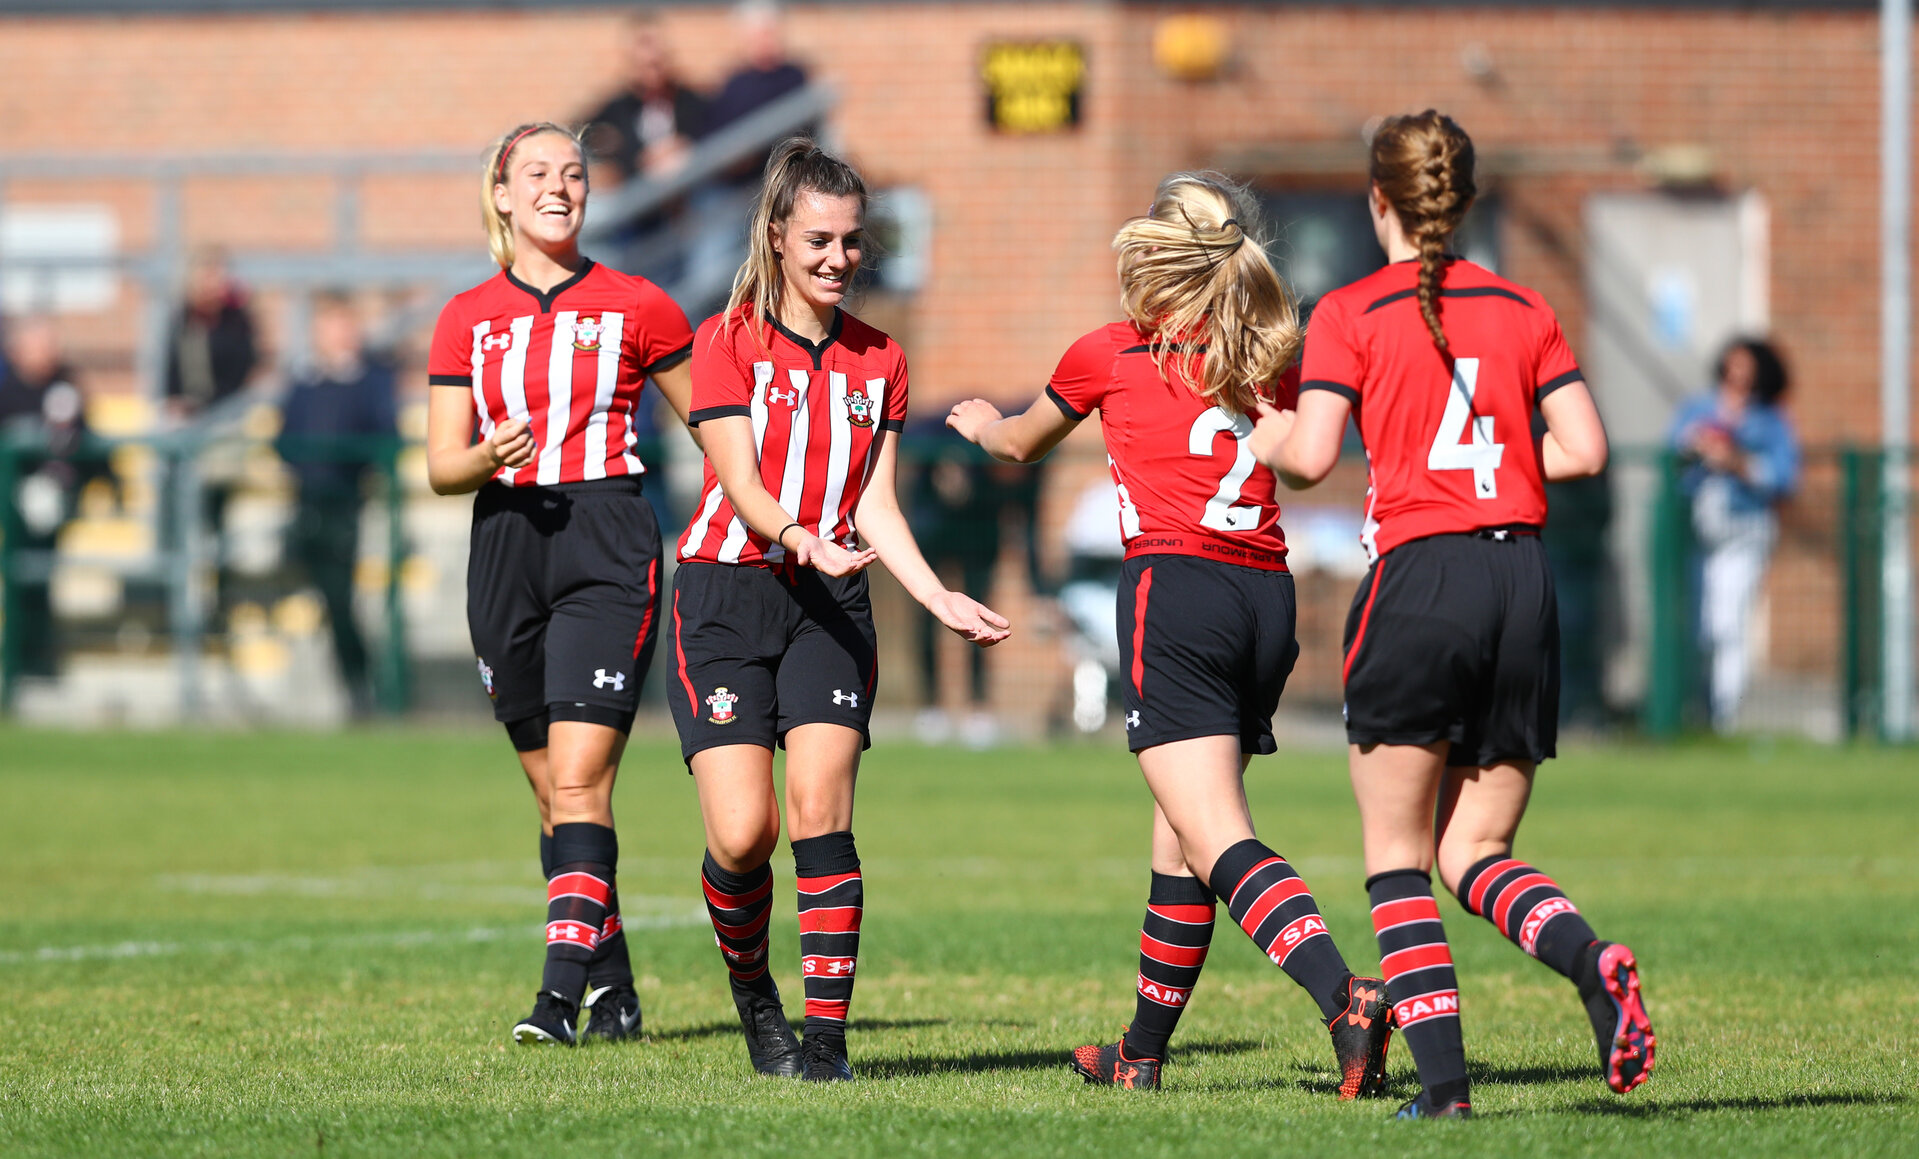 Southampton FC Women's v New Milton Women's, at AFC Totton, Southampton, 23rd September 2018